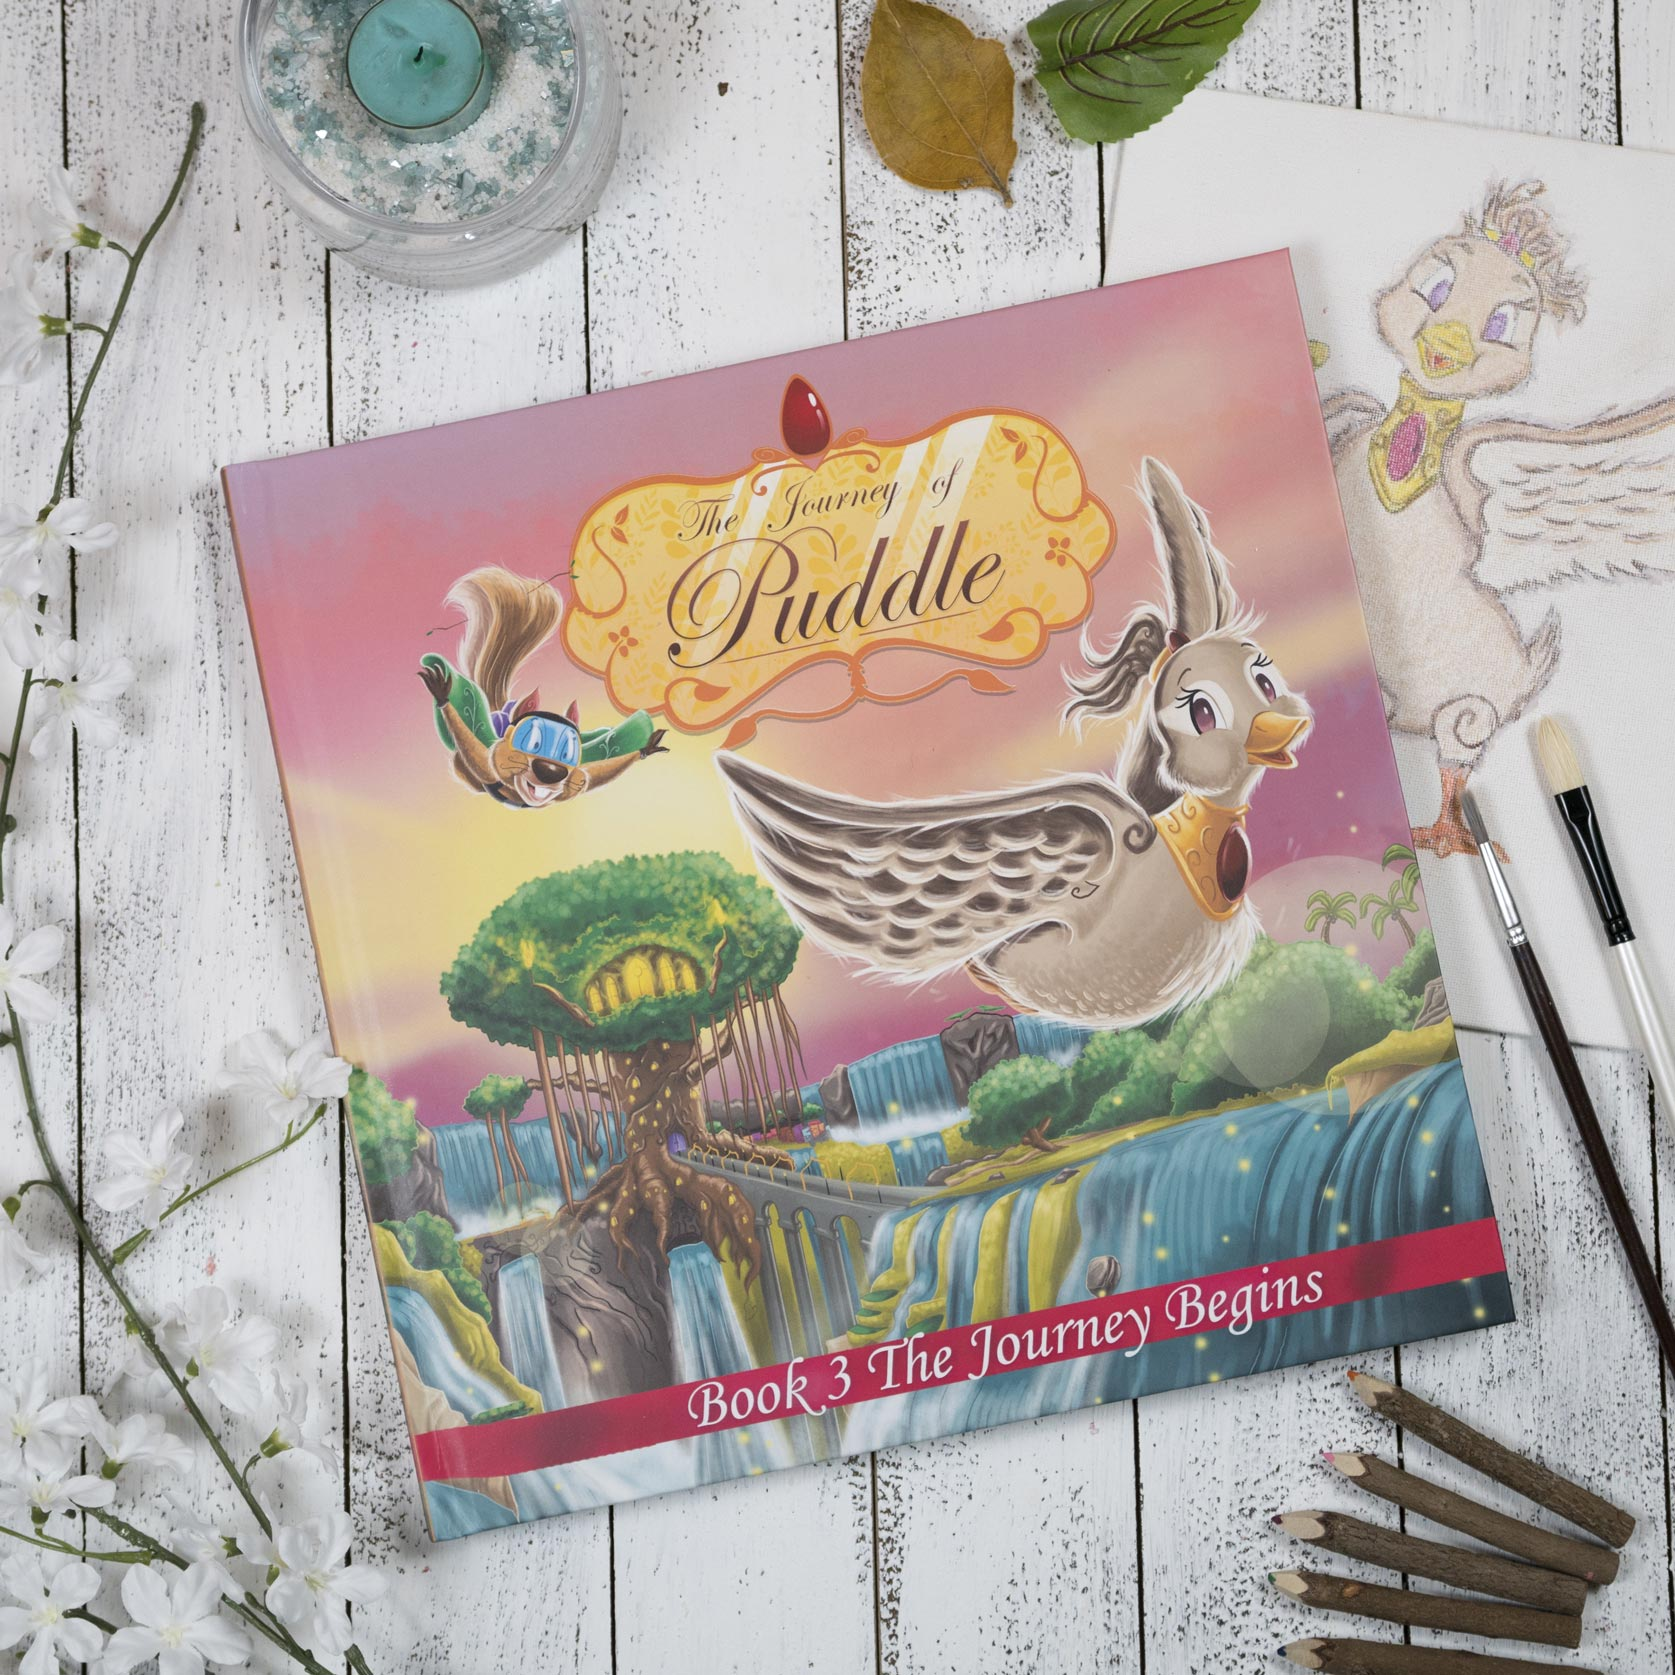 Journey of Puddle - Book 3 - The Journey Begins